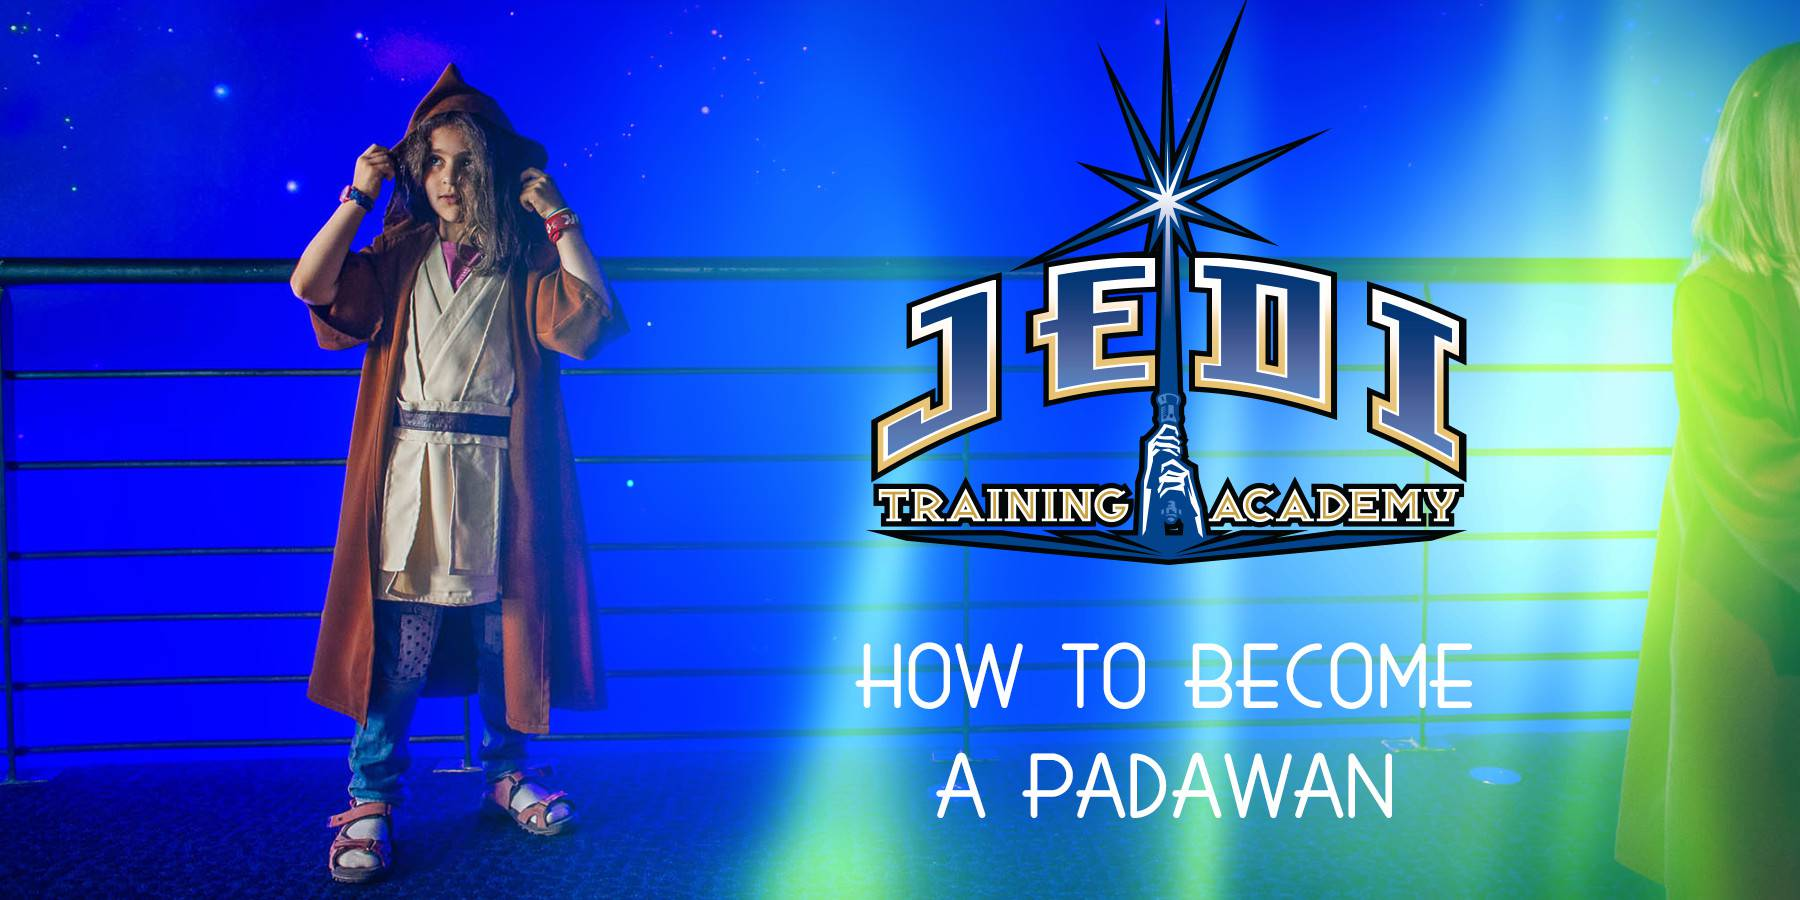 How to become a Padawan